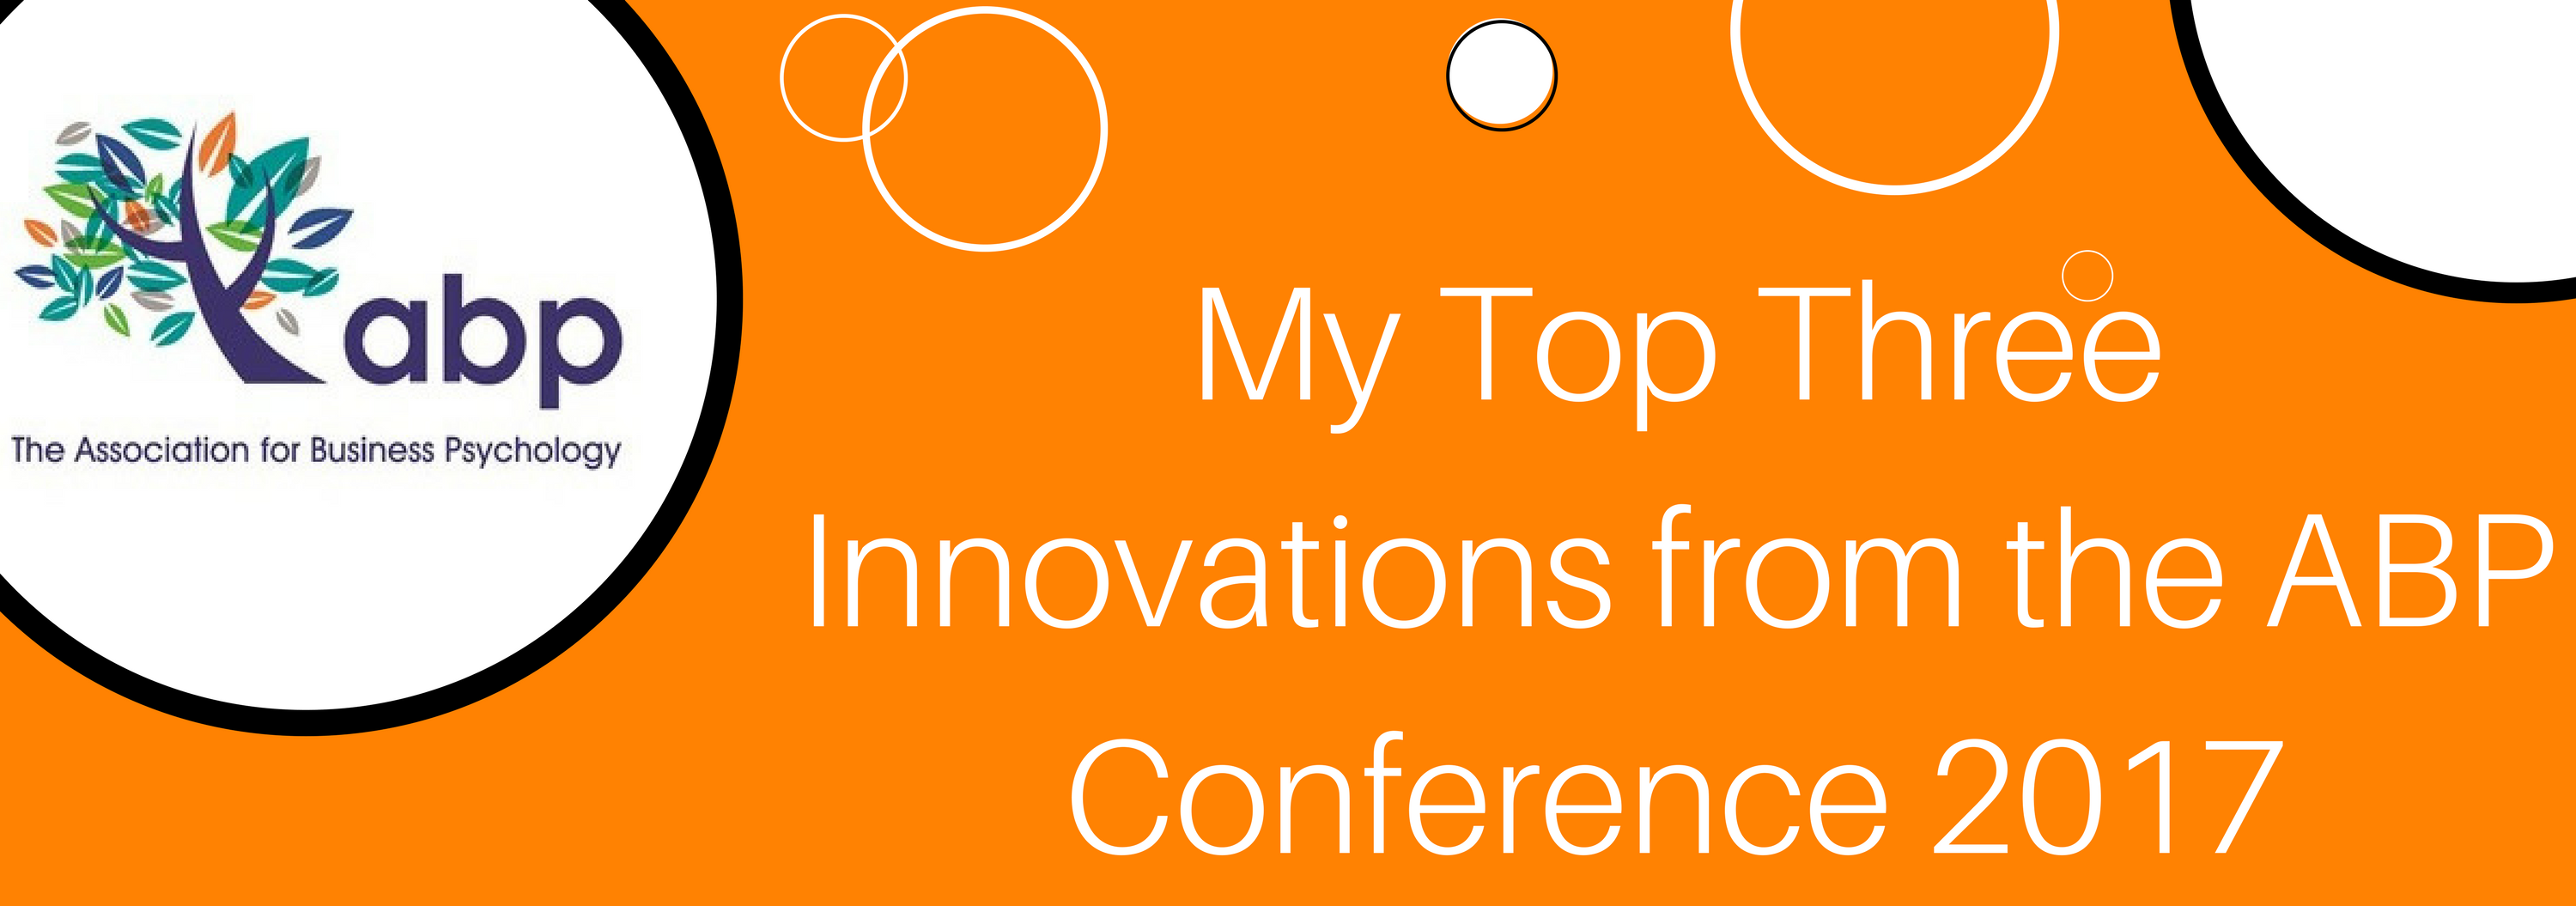 My Top Three Innovations from The ABP Conference 2017